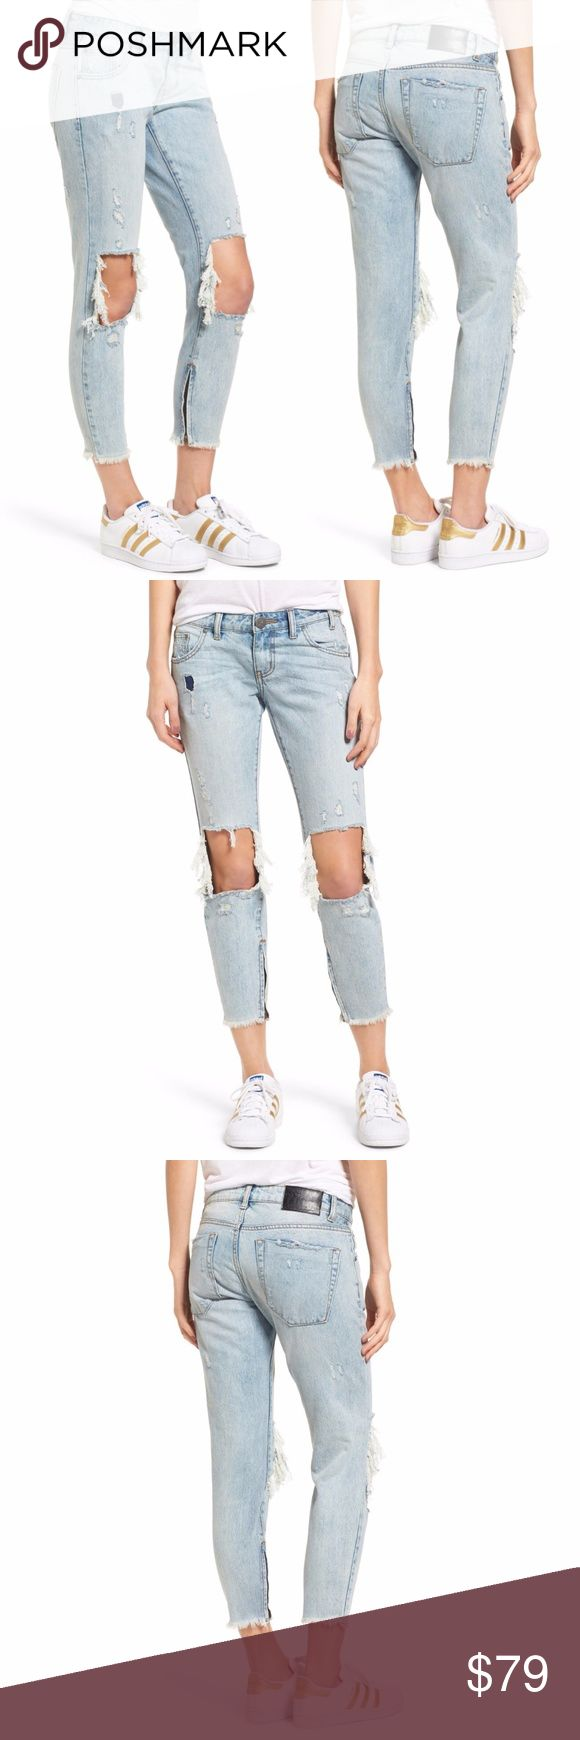 """New One Teaspoon Freebirds Jeans One Teaspoon Freebirds Womens Crop Jeans - Blue Hart        100% Cotton  New with tags.    MEASUREMENTS (Based on size 29) Waist:  15"""" flat across Rise:  8"""" Inseam: 25""""  All items I sell are 100% authentic! Buy with Confidence.  246628 246528 One Teaspoon Jeans Ankle & Cropped"""